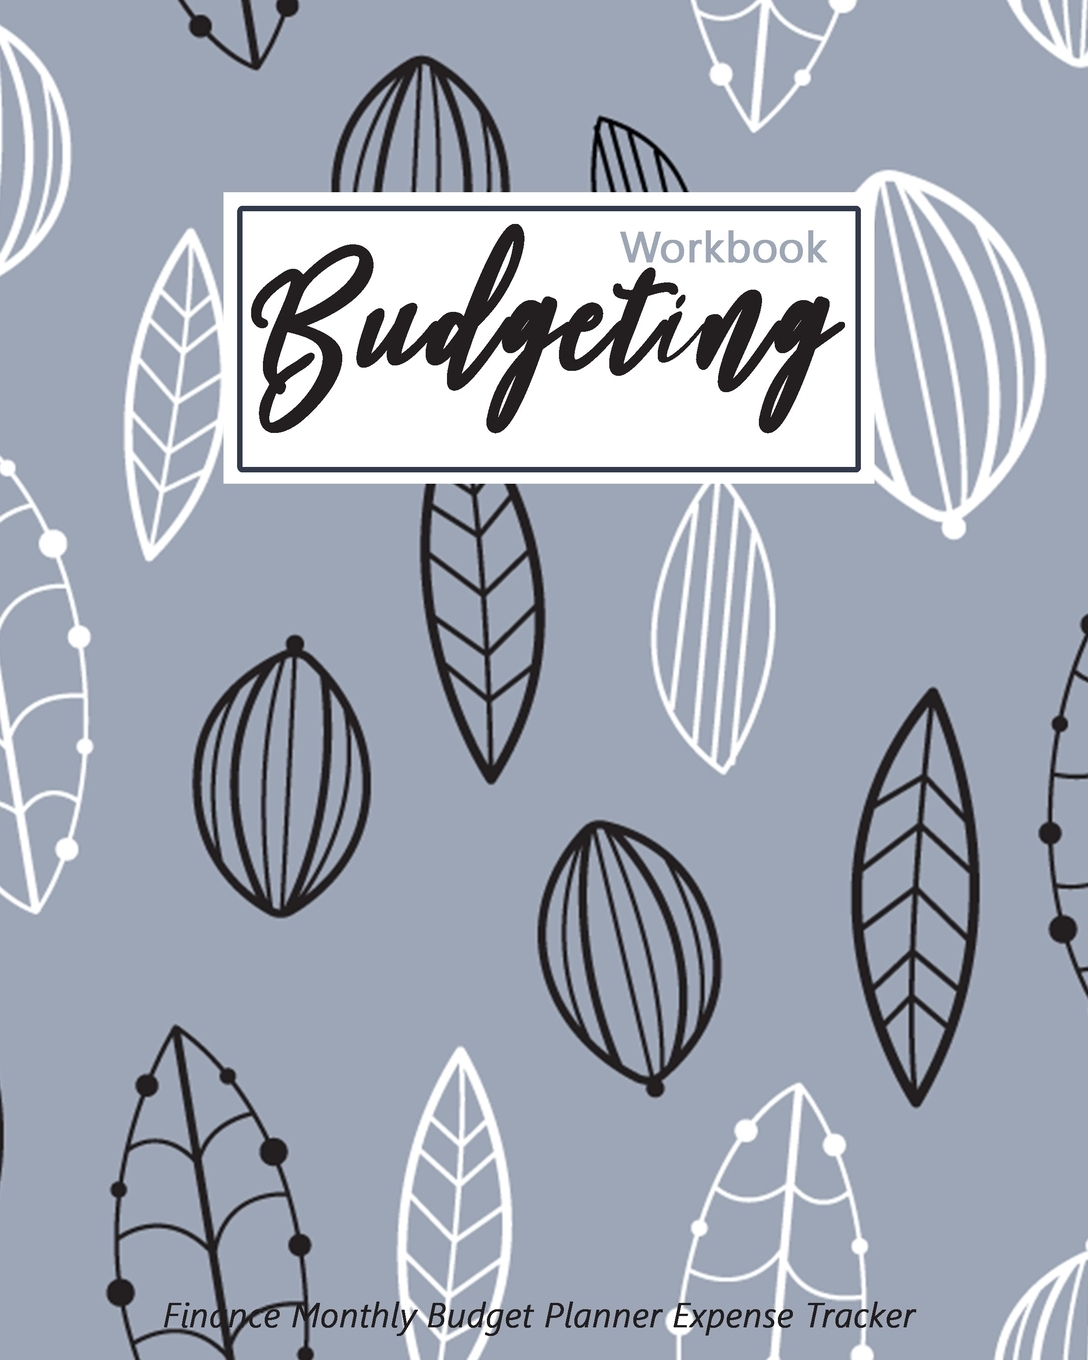 Budgeting Workbook Finance Monthly Weekly Budget Planner